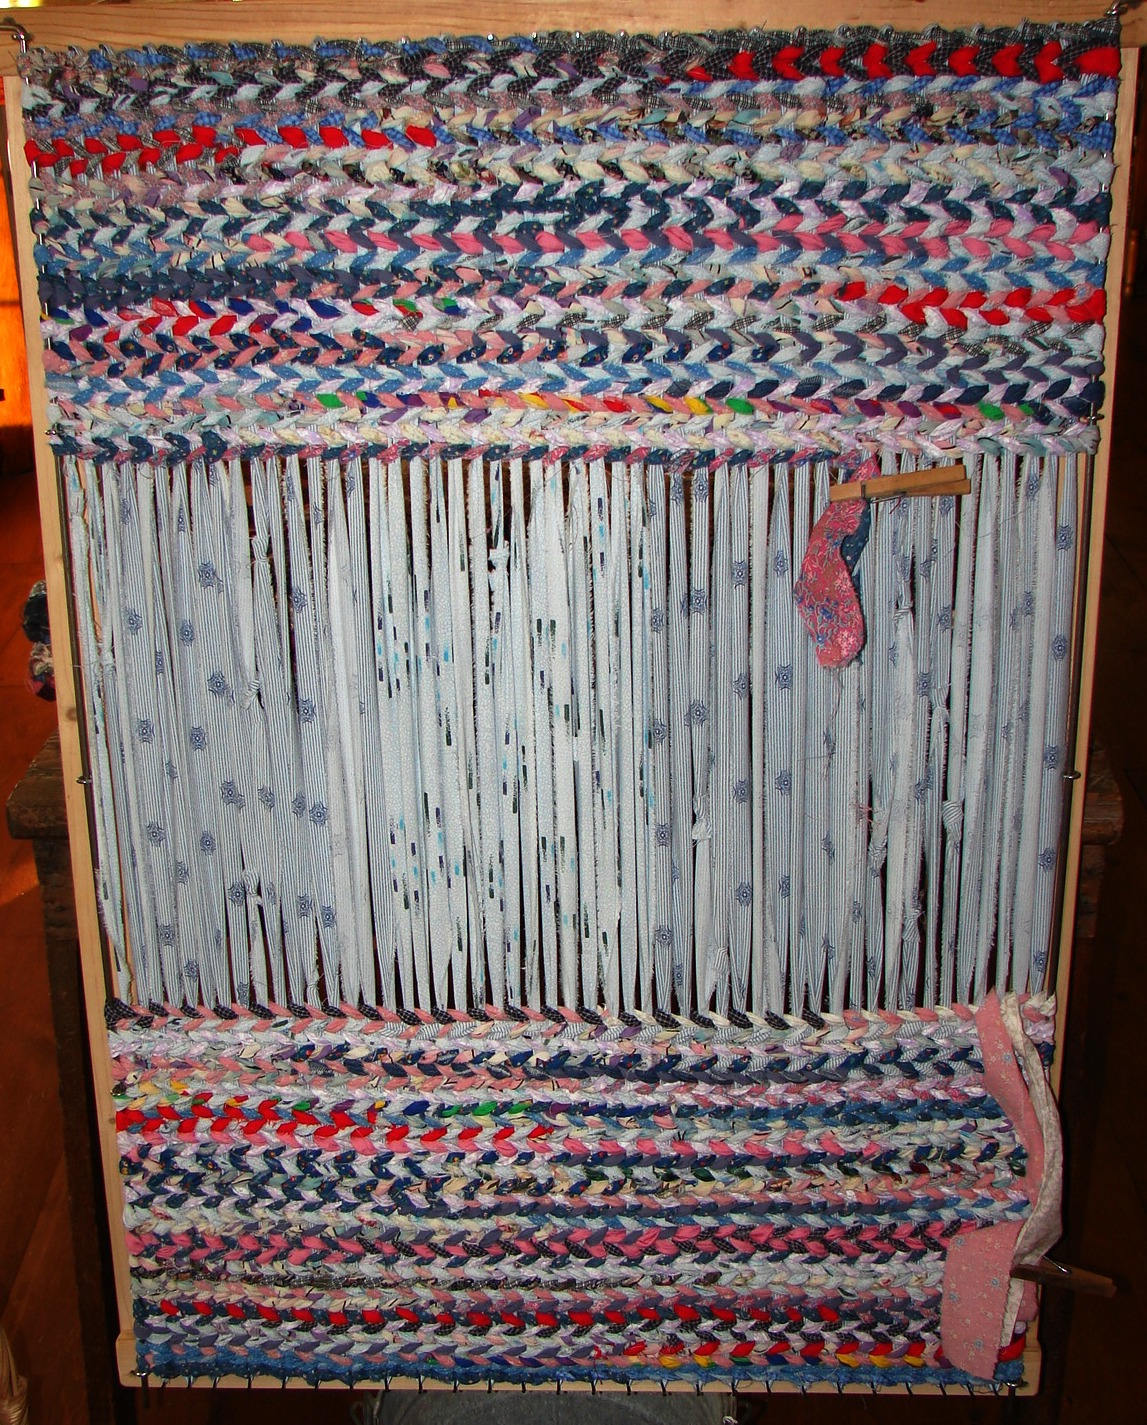 Fabric Rug Making The Country Farm Home Rag Rugs A Delta Folk Art